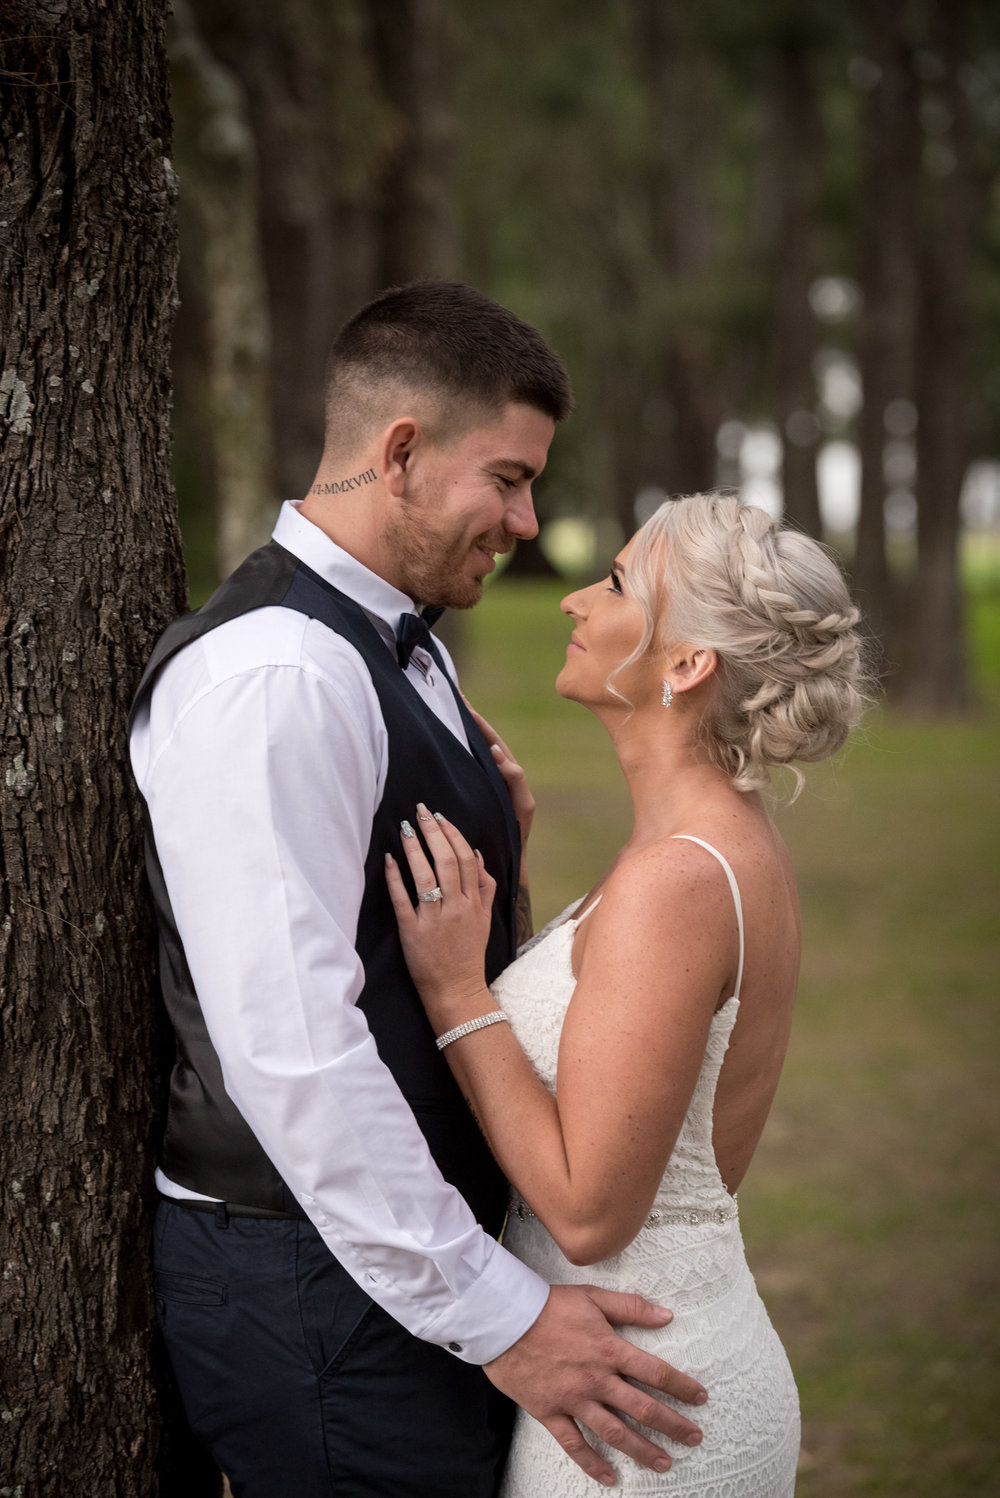 cnj-photography_Larissa-&-Travis-19.jpg